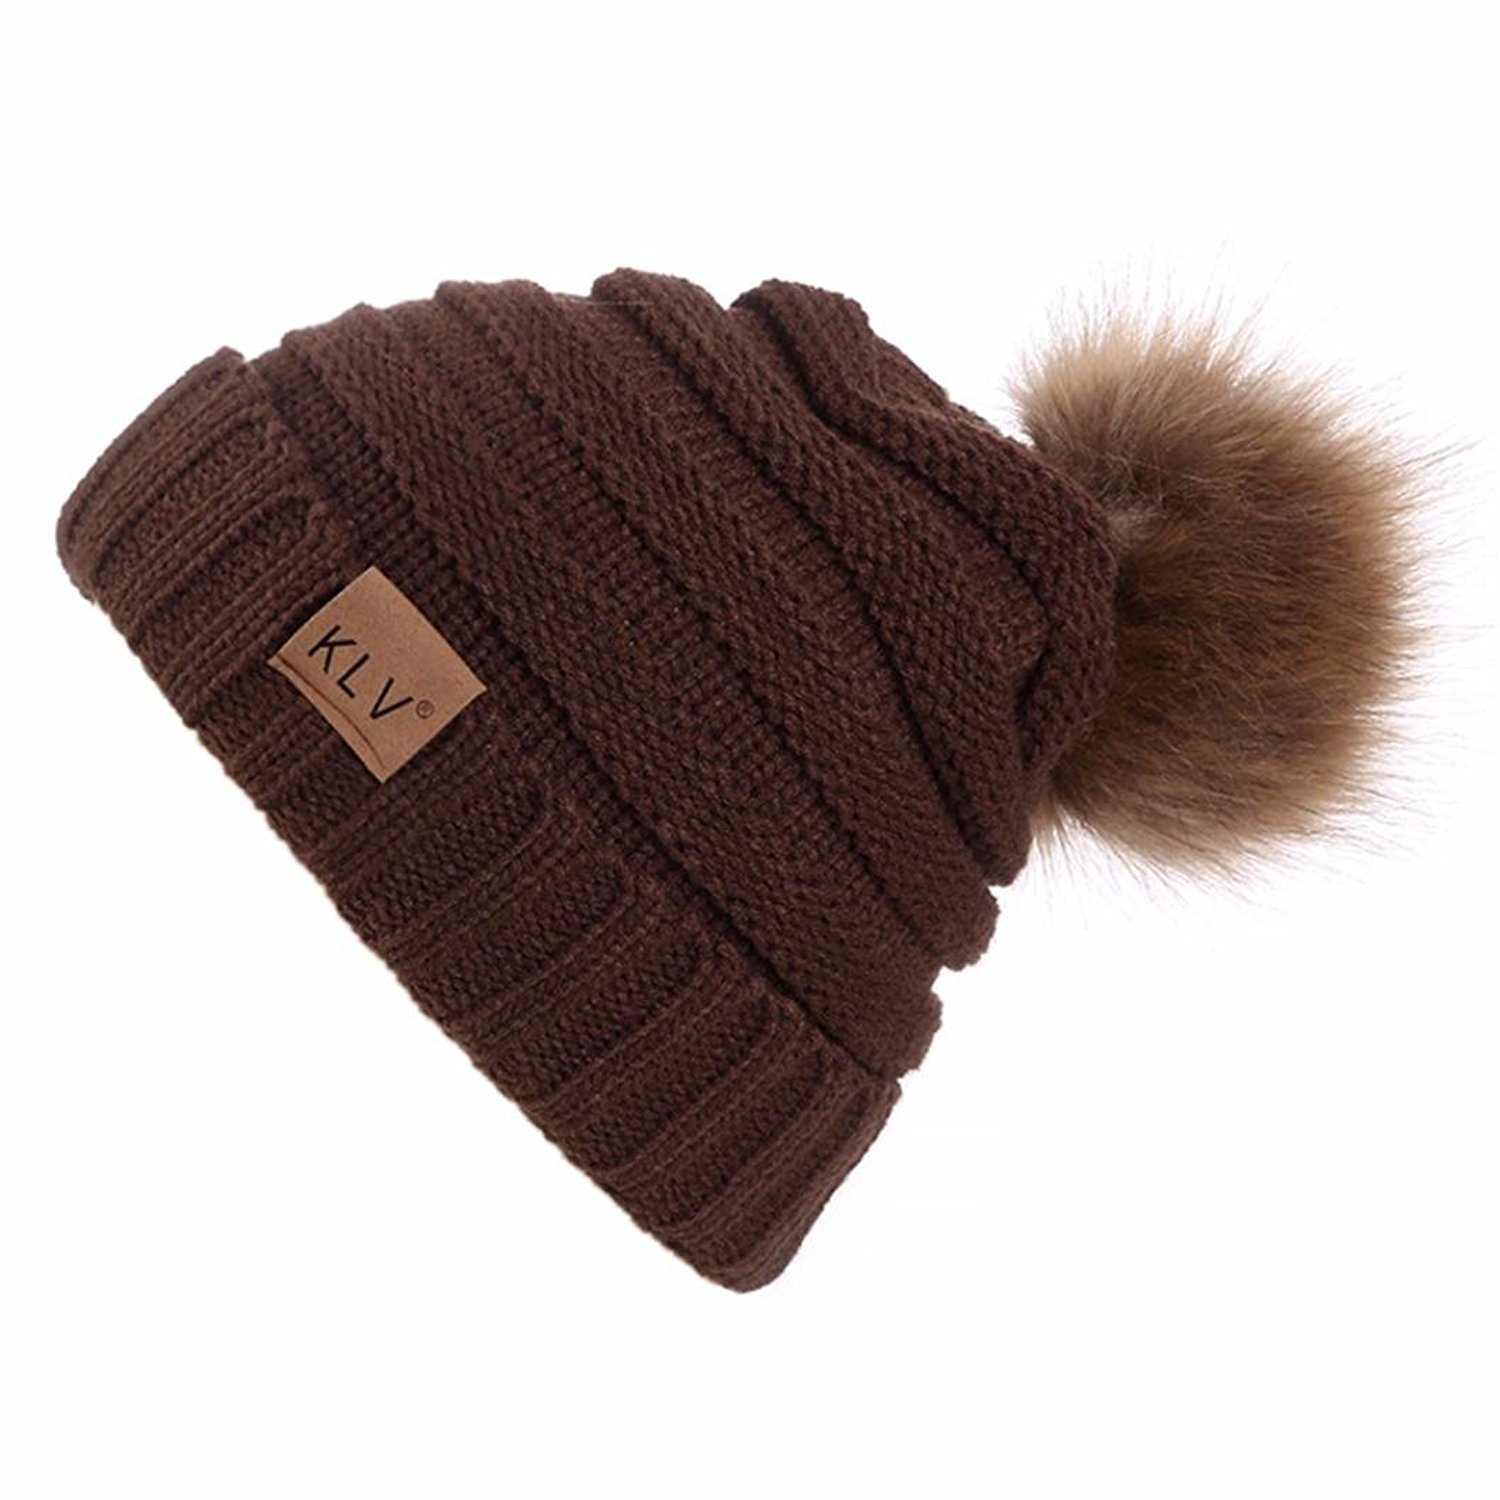 96431f29066c05 Get Quotations · Hunputa Unisex Hat Winter, Womens Winter Slouchy Knit  Beanie Chunky Faux Fur Pom Poms Hat